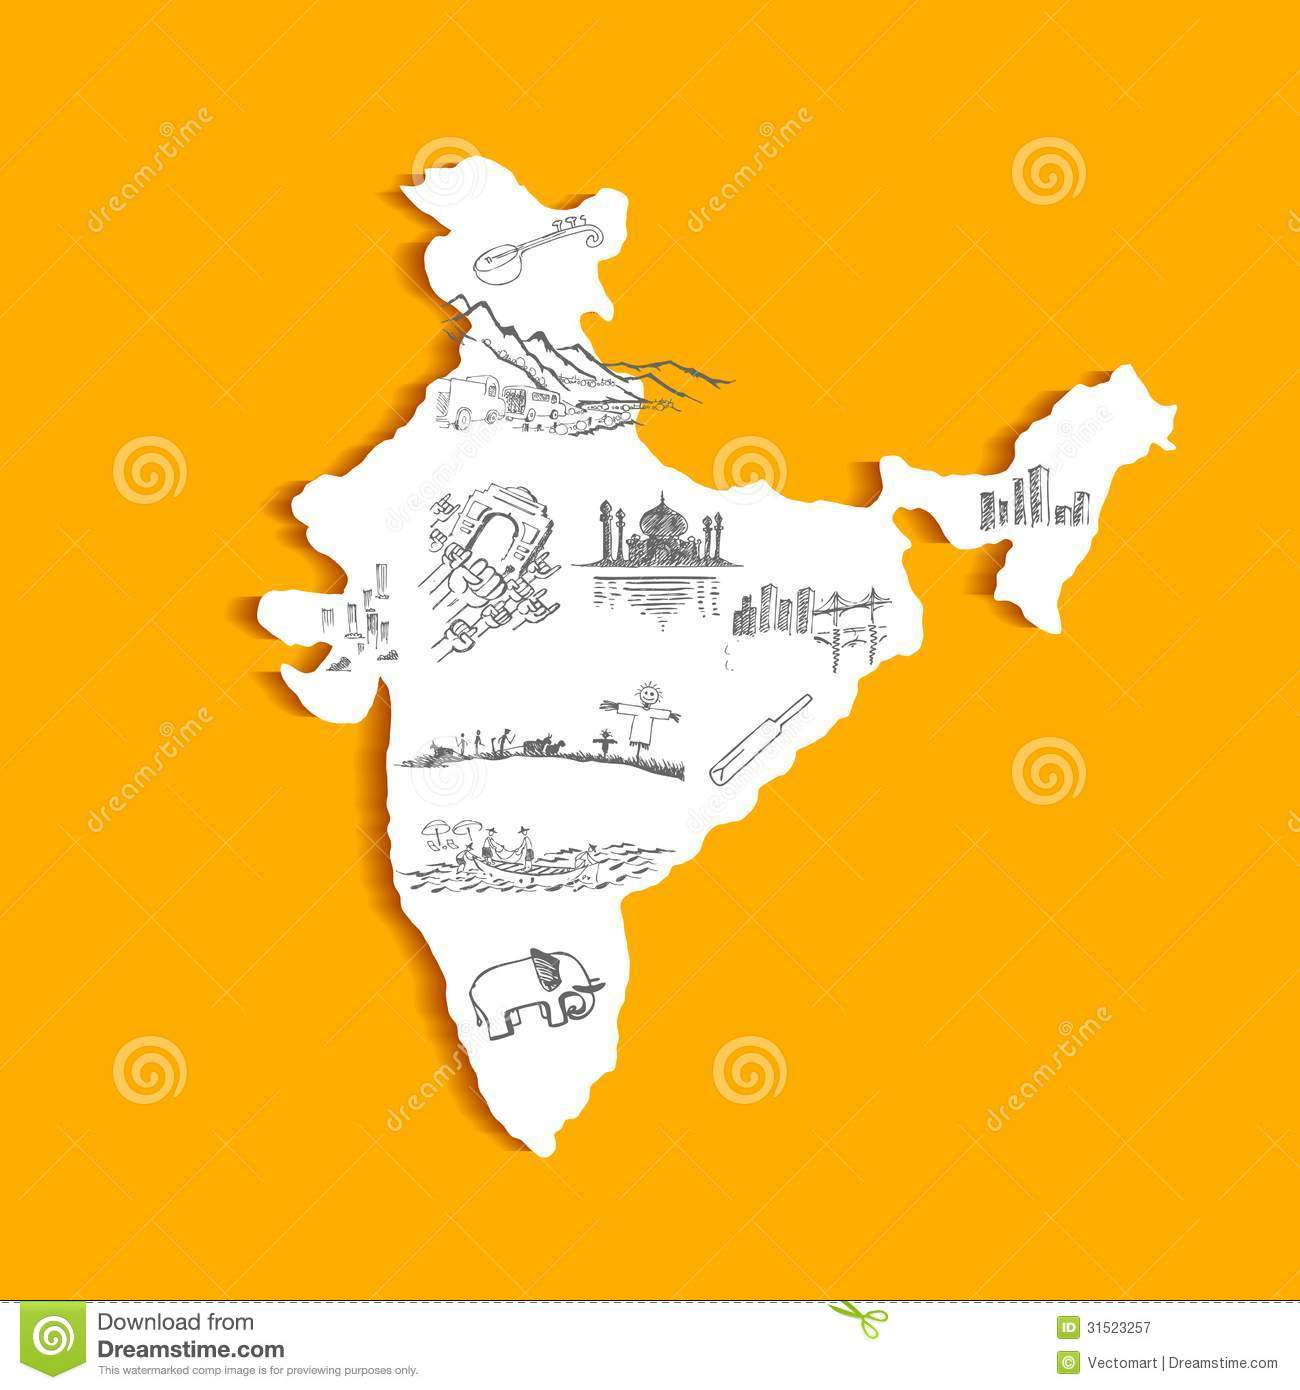 Indian Map Royalty Free Stock Photography - Image: 31523257